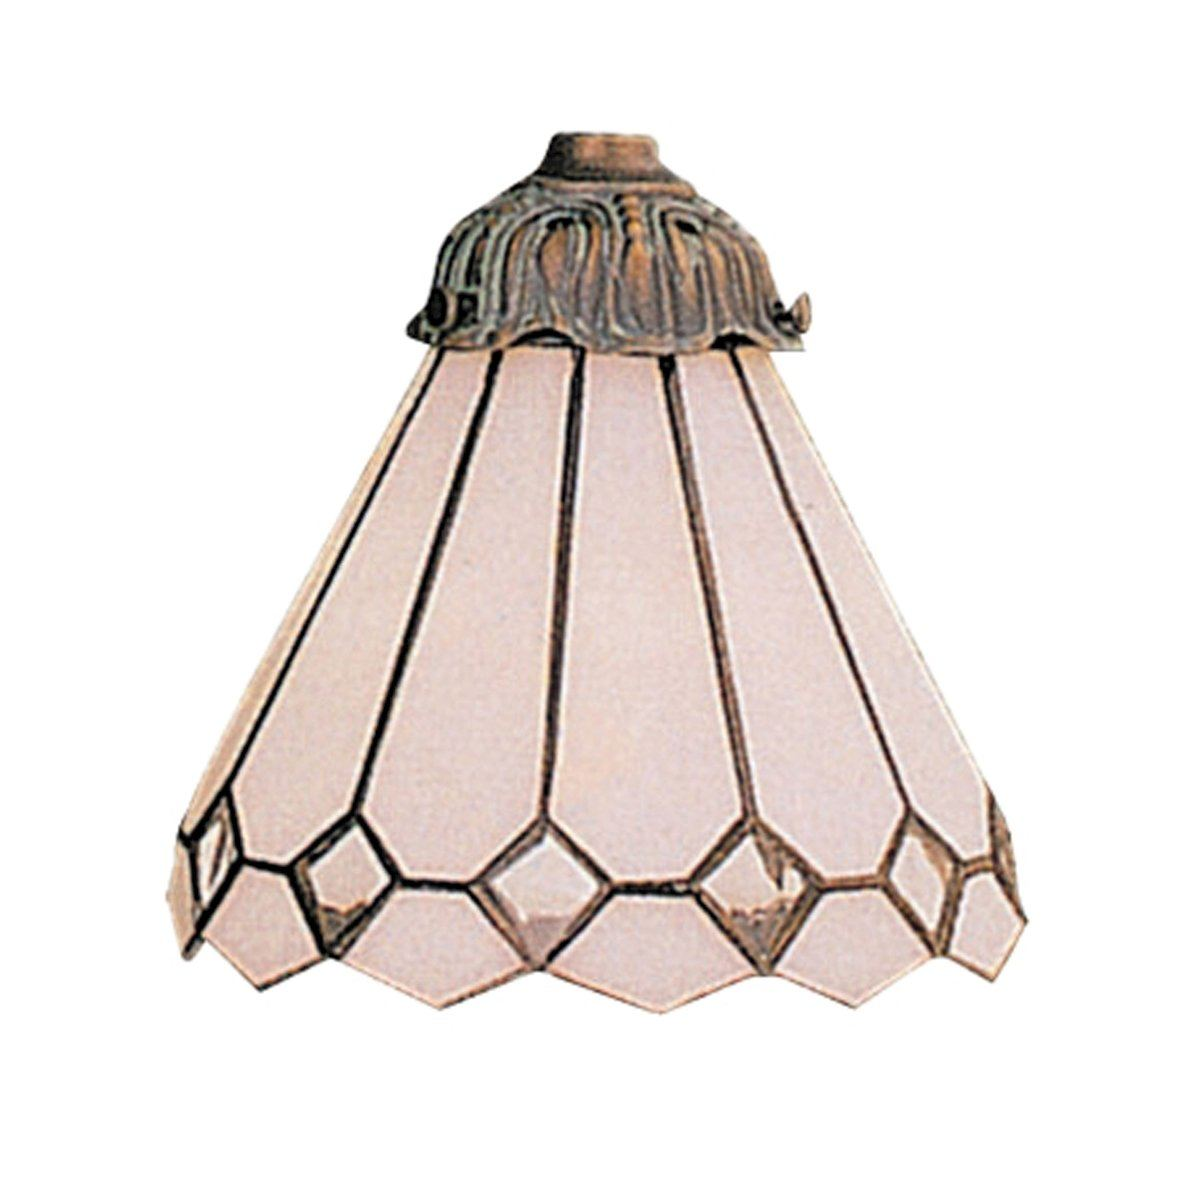 Mix-N-Match 1 Light White Tiffany Glass Shade Shades/Glass Elk Lighting